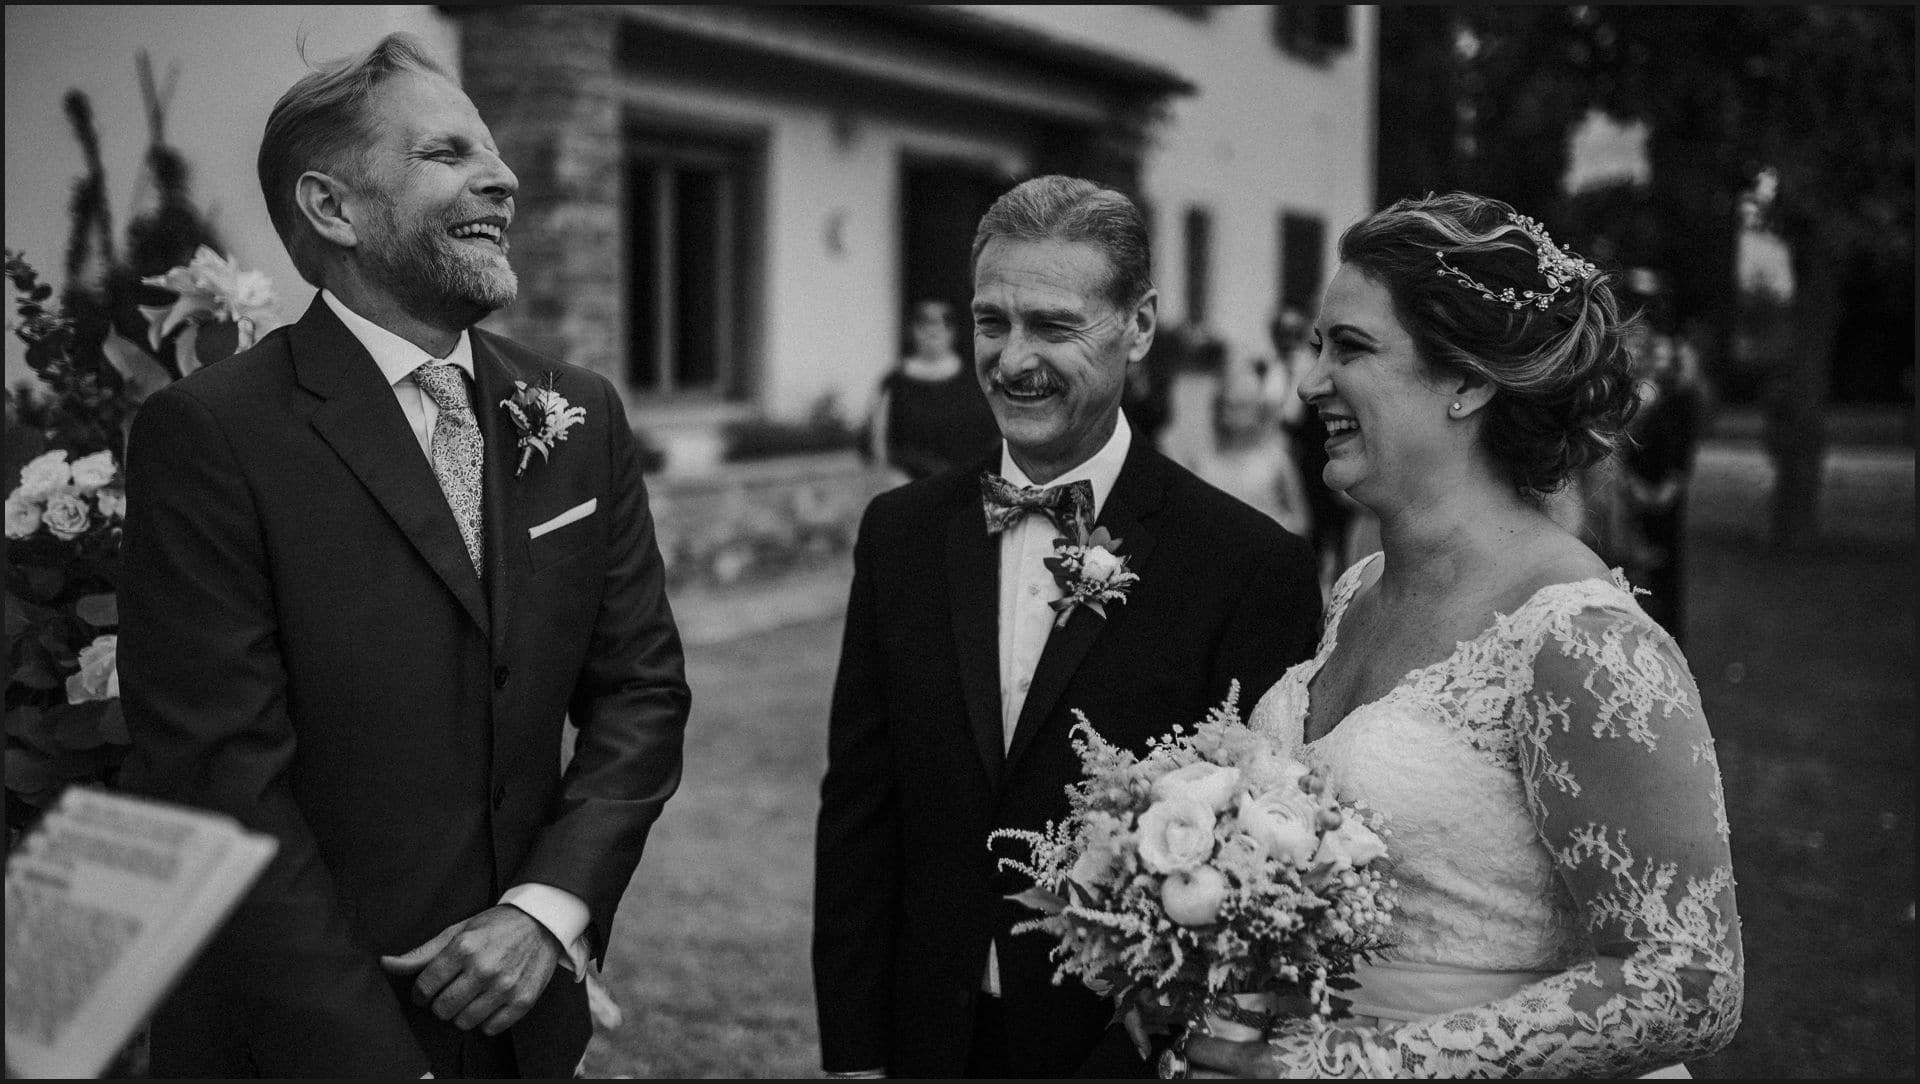 tuscany, destination wedding, chianti, black and white, bride, groom, father of the bride